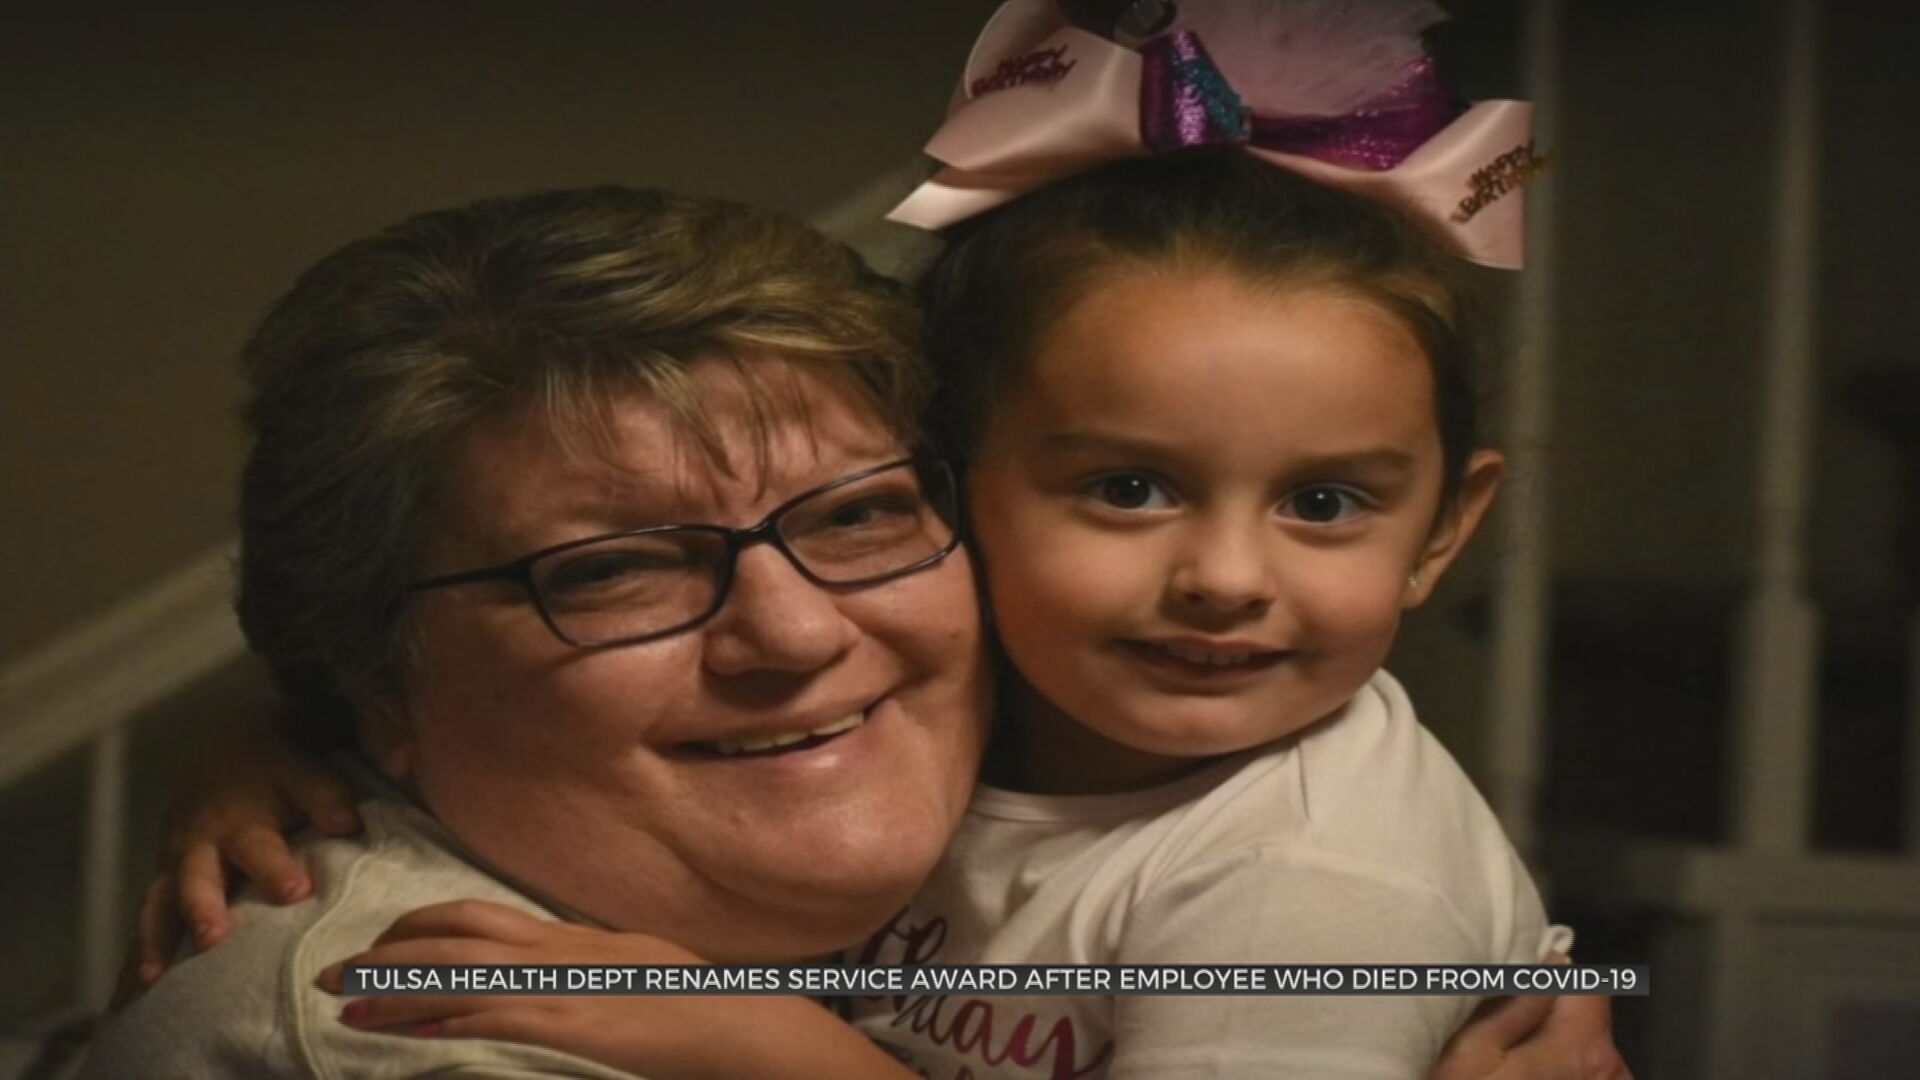 Tulsa Health Department Renames Service Award In Honor Of Late Employee